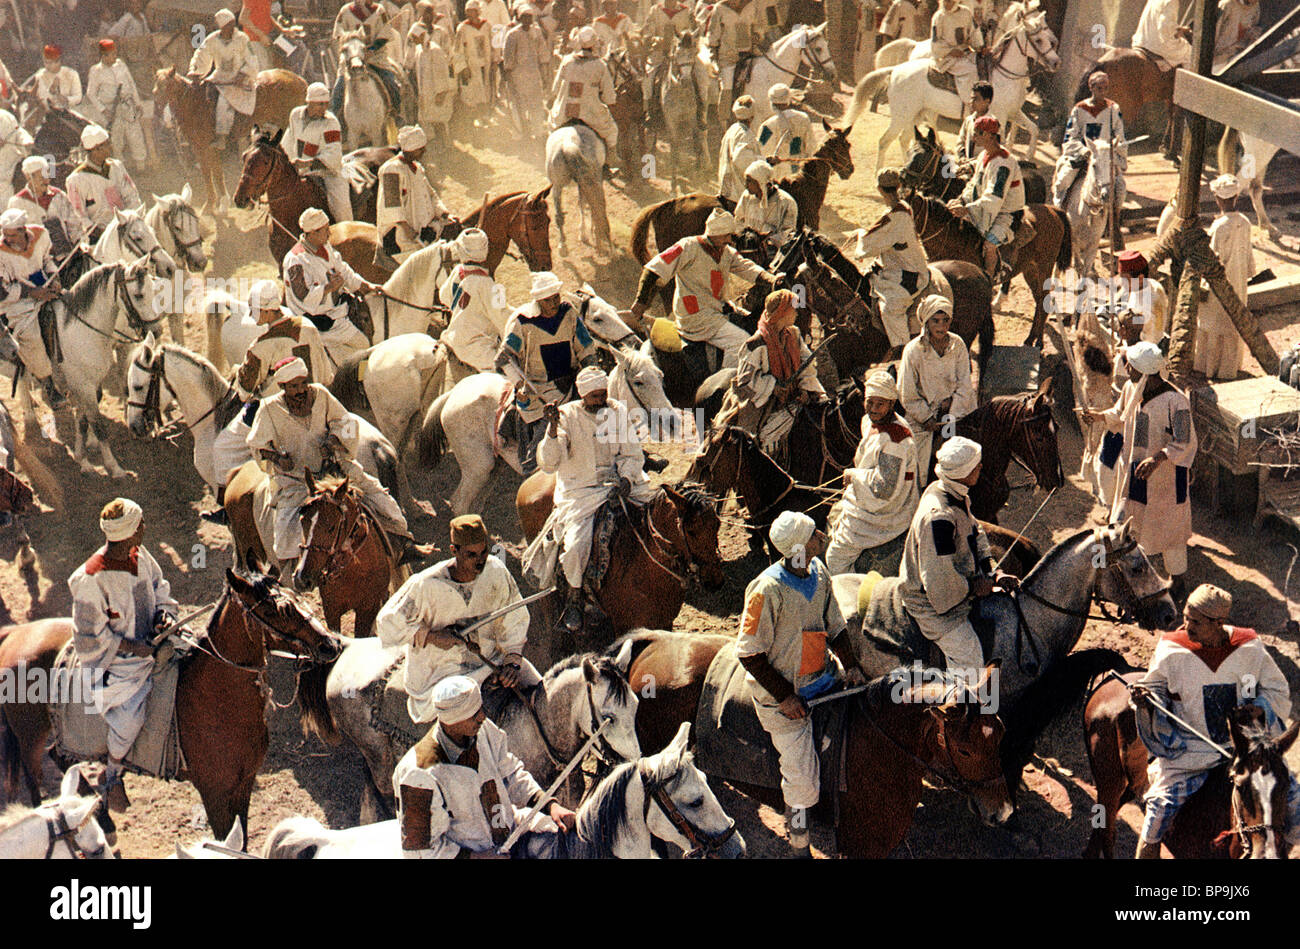 CAVALRY PREPARES FOR BATTLE KHARTOUM (1966) - Stock Image